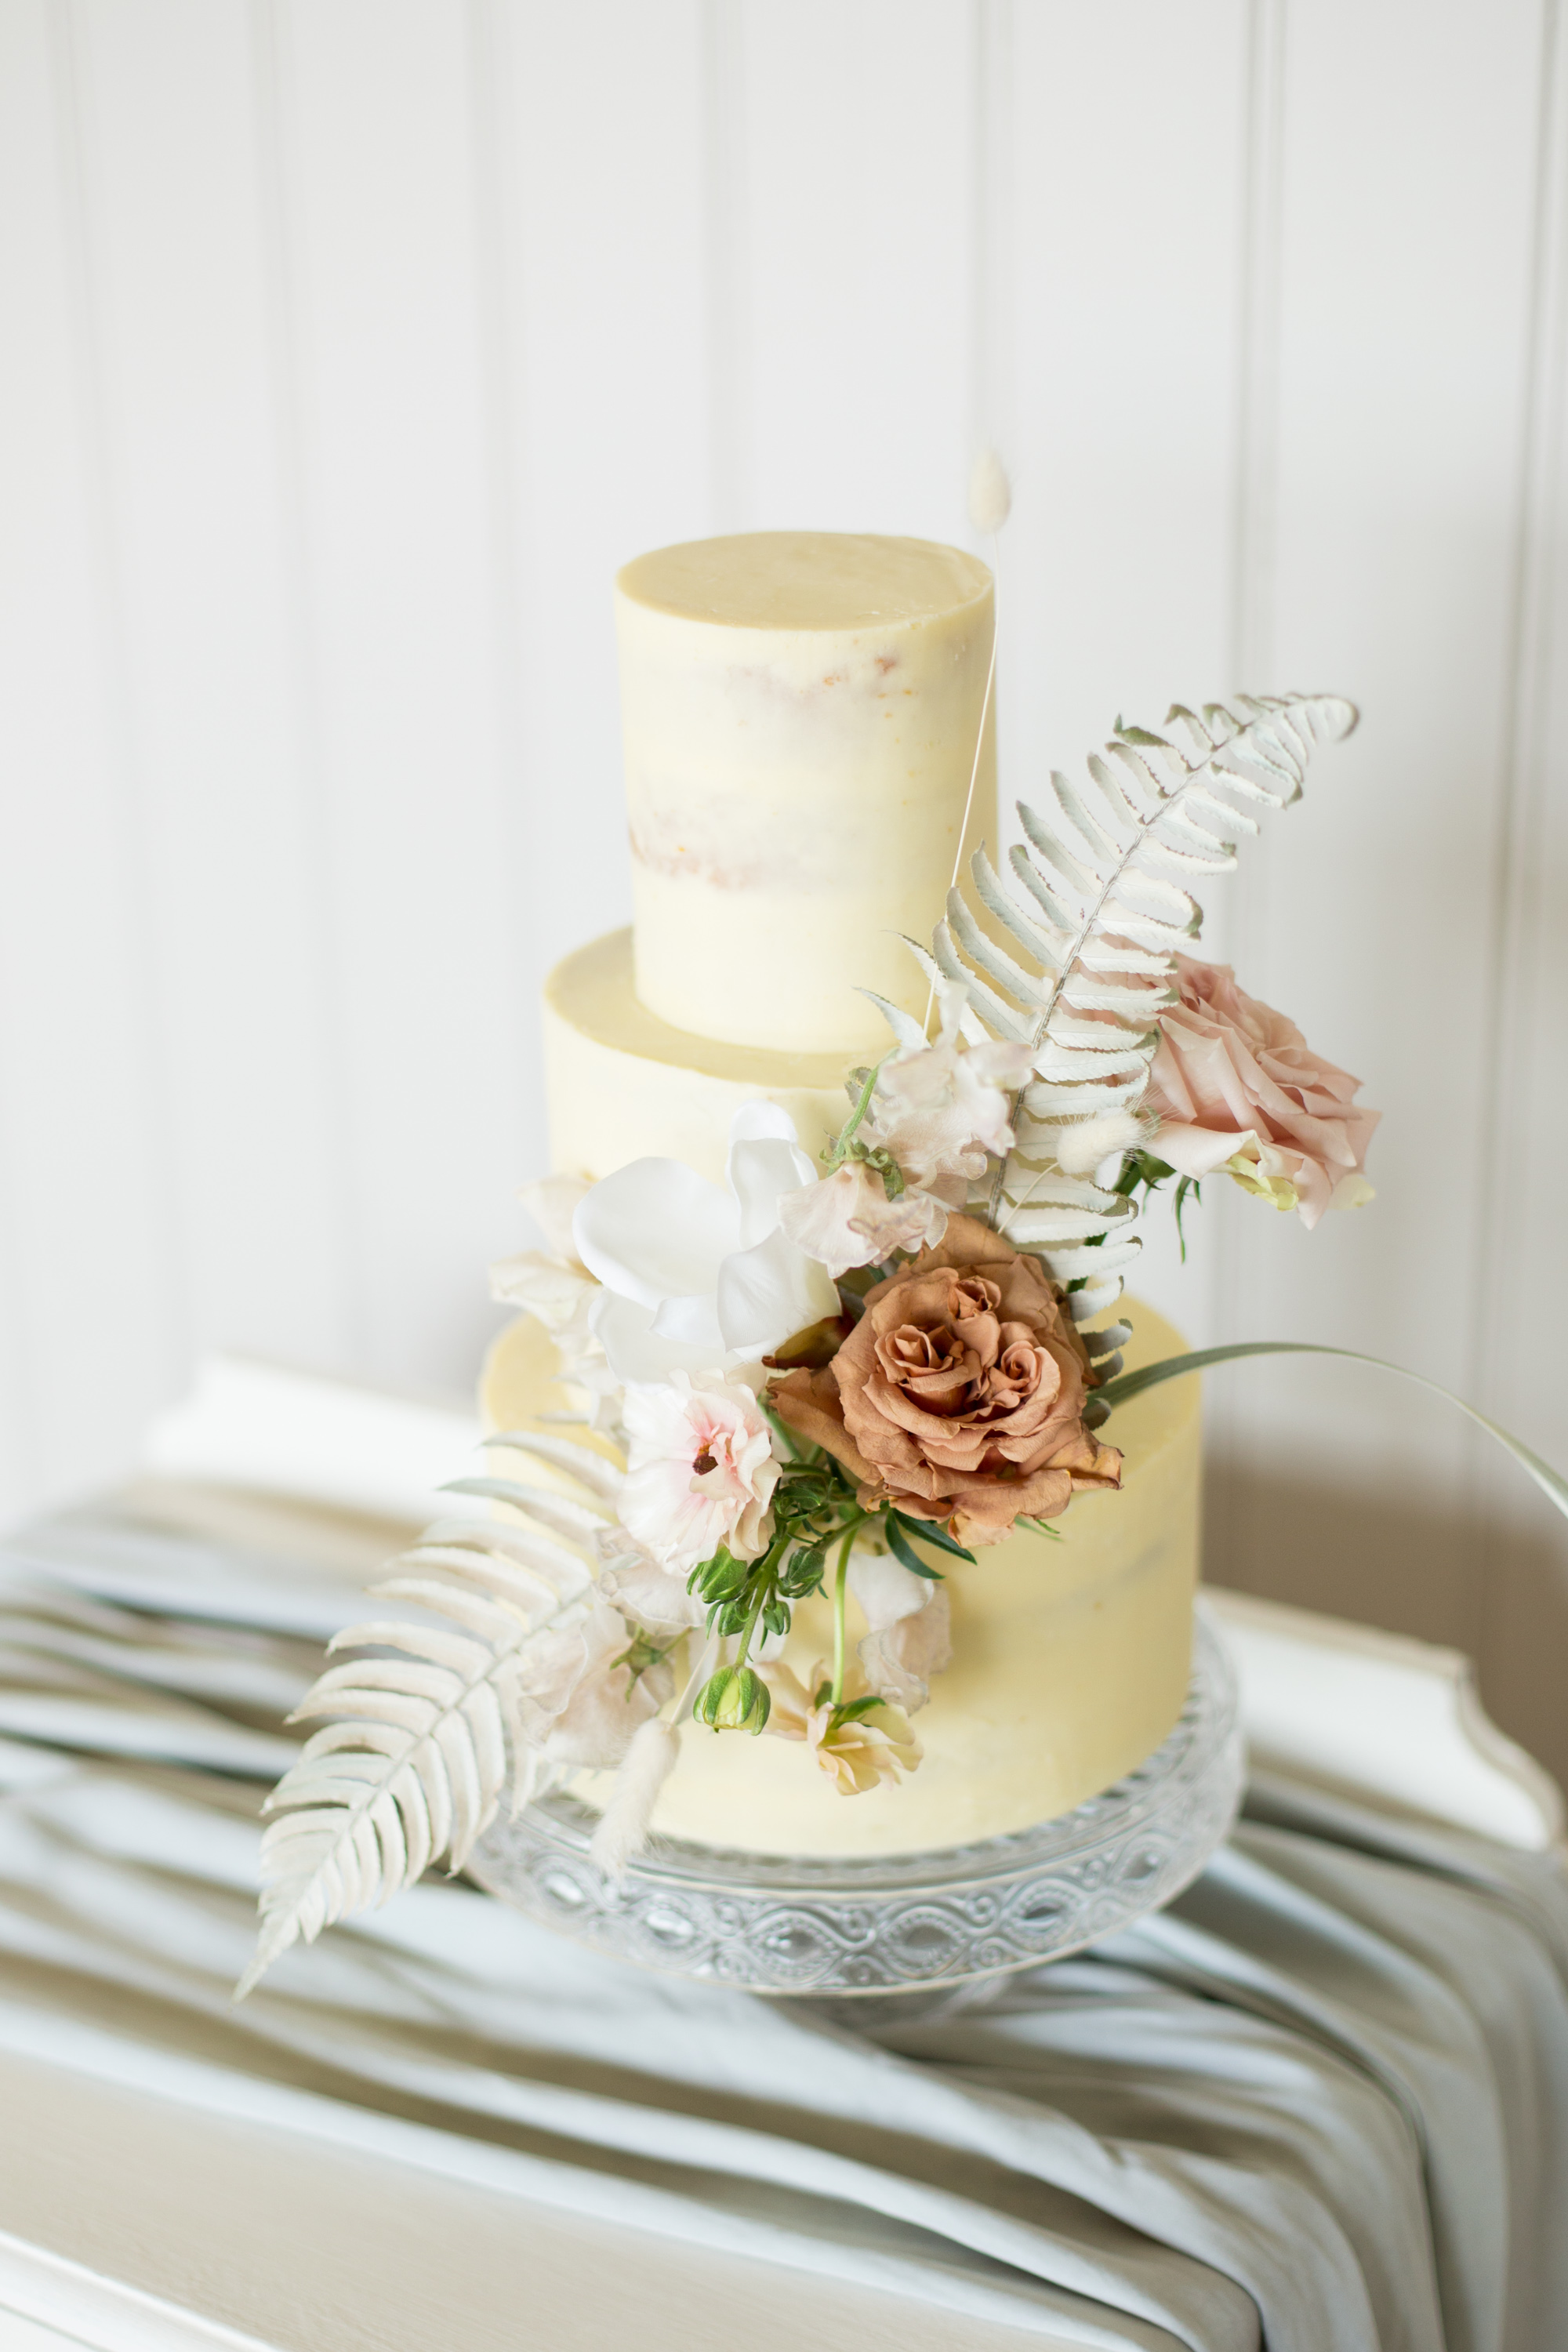 Sleek, smooth buttercream cake decorated with striking florals with dried palms, butterfly ranunculus and pretty toffee coloured roses